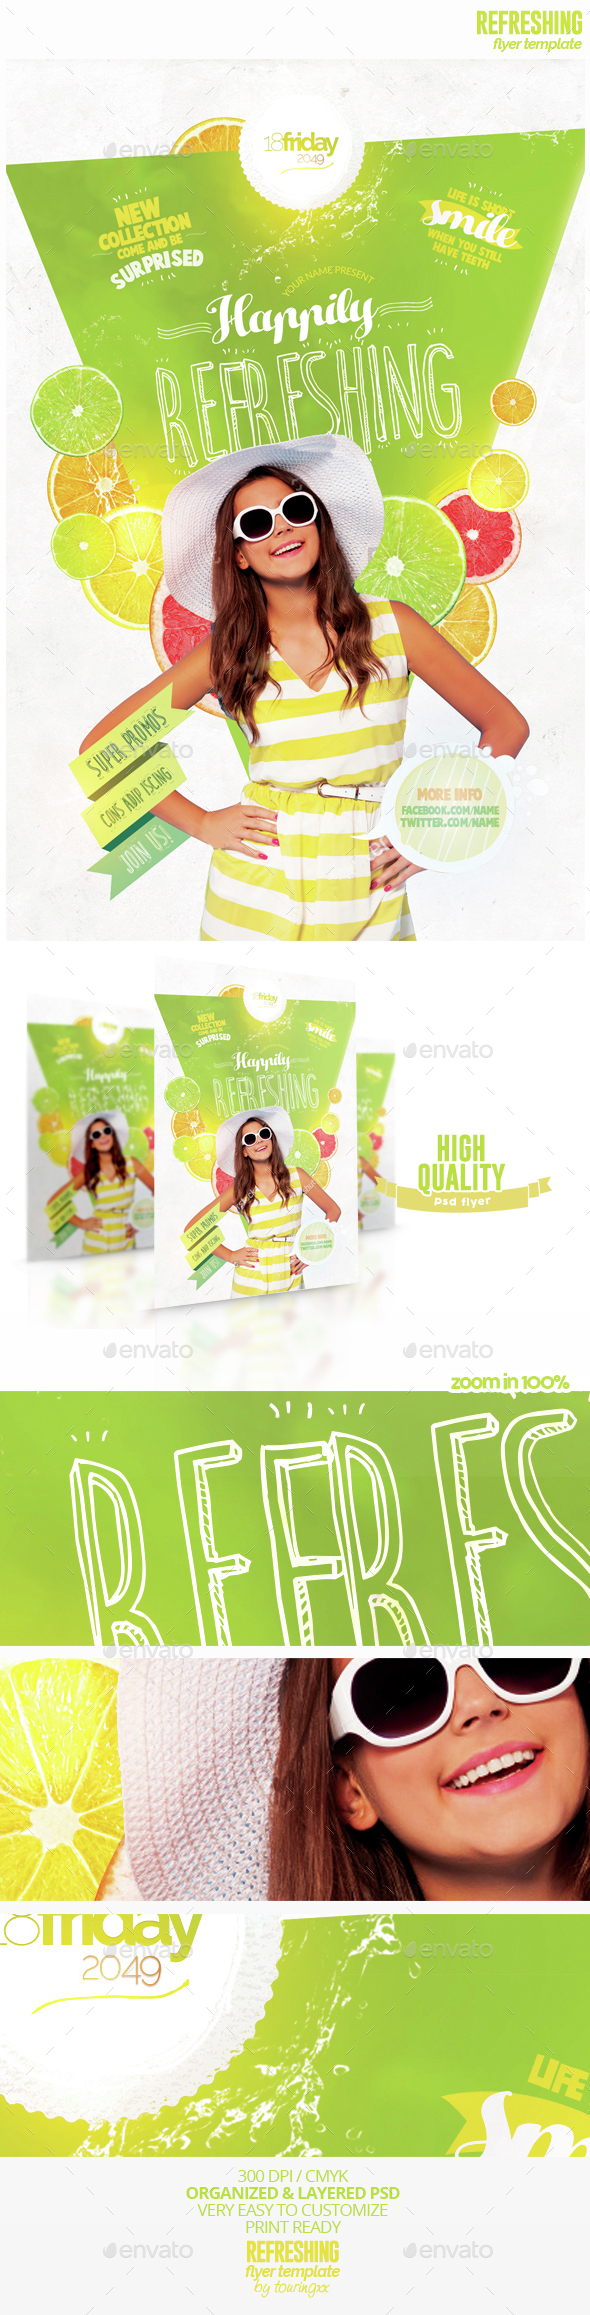 Refreshing Flyer Template - Flyers Print Templates